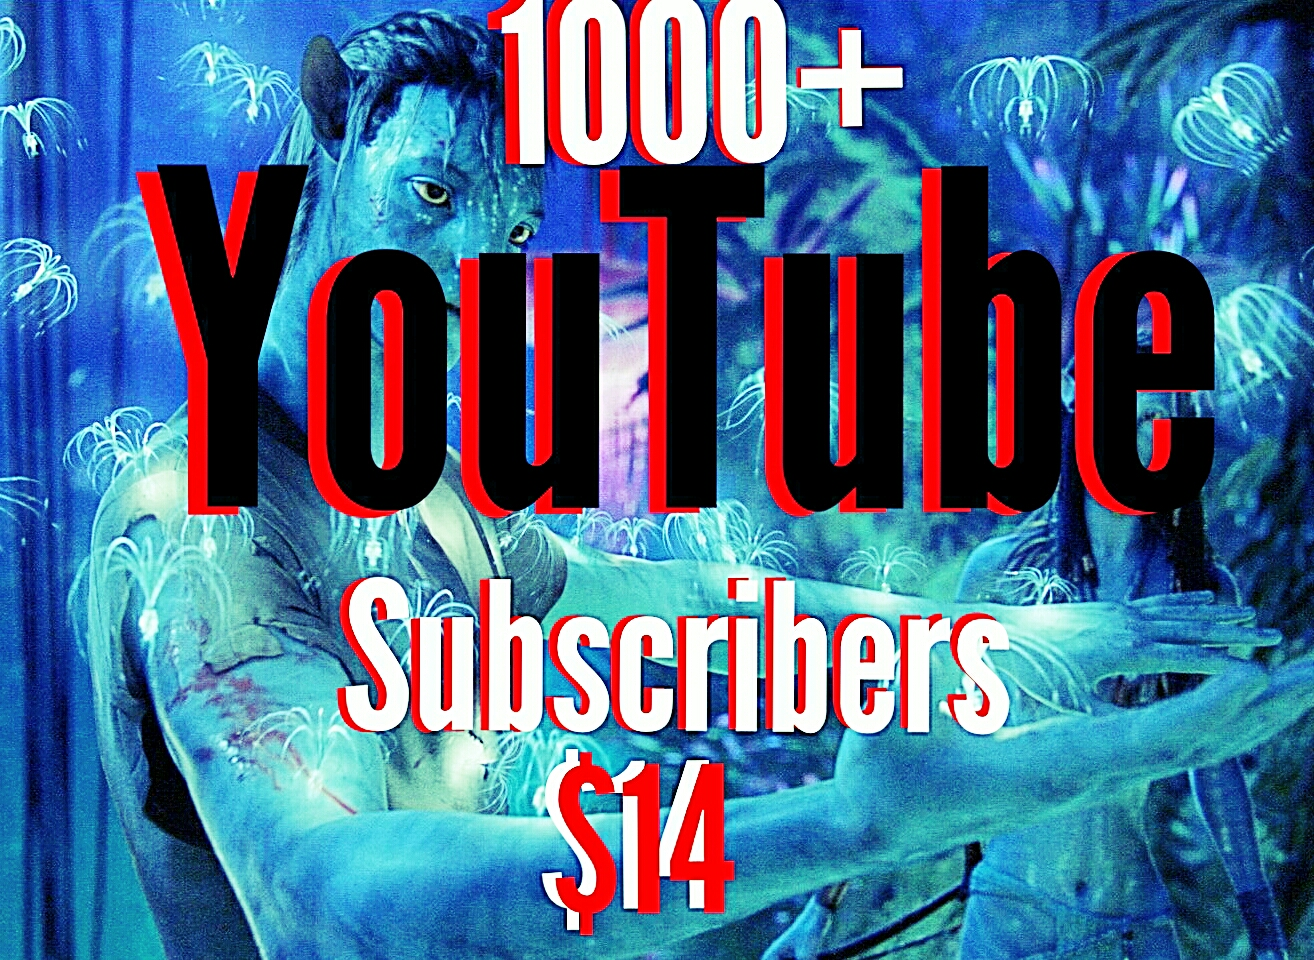 how to get 1000 subscribers on youtube in 1 day